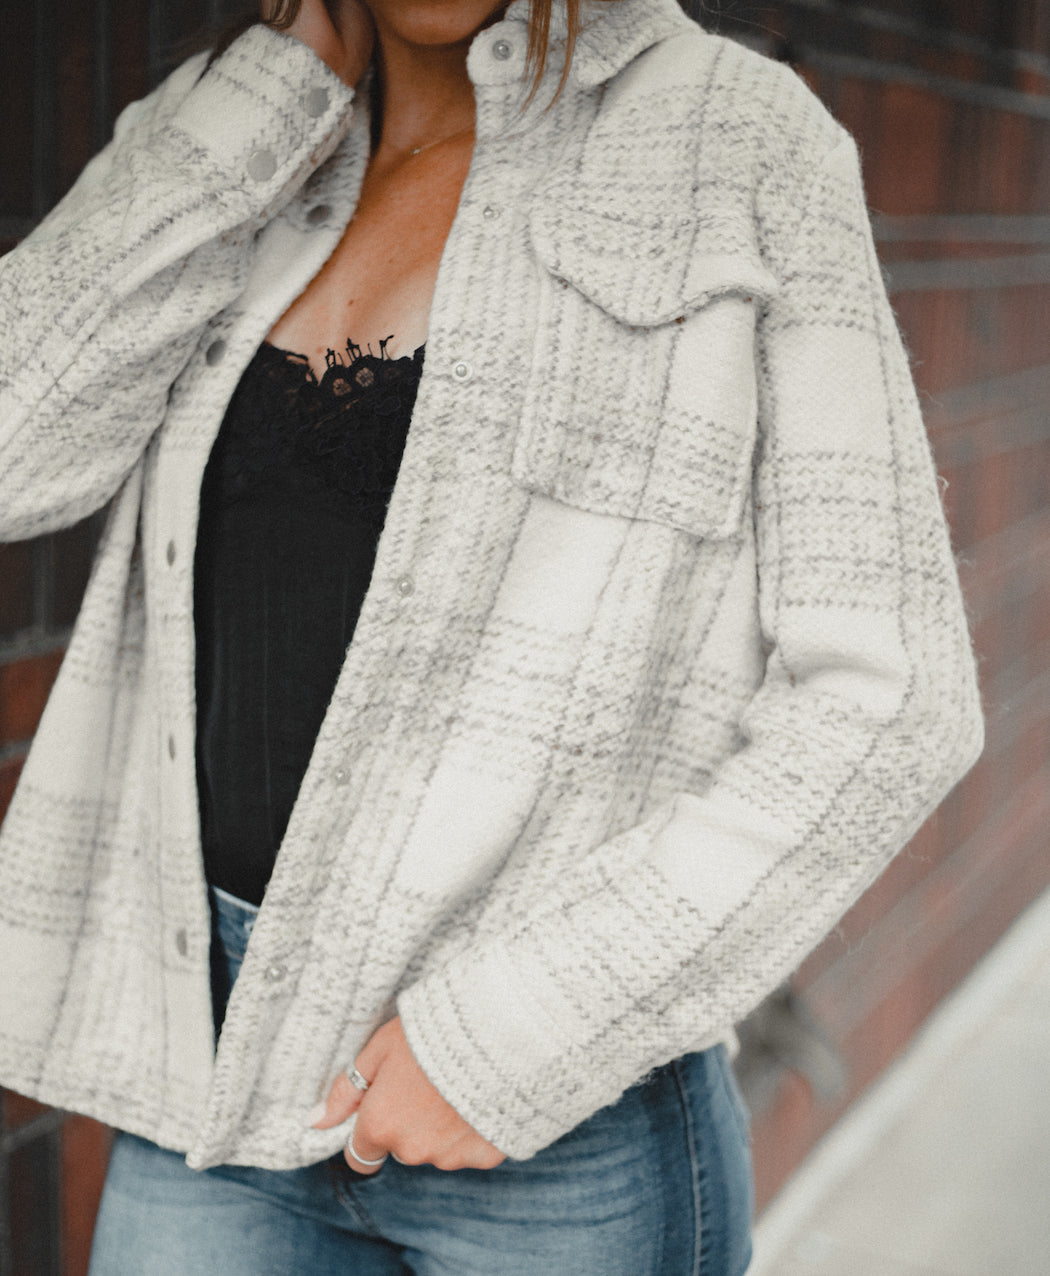 BB Dakota - Work Hard Play Hard Knit Jacket